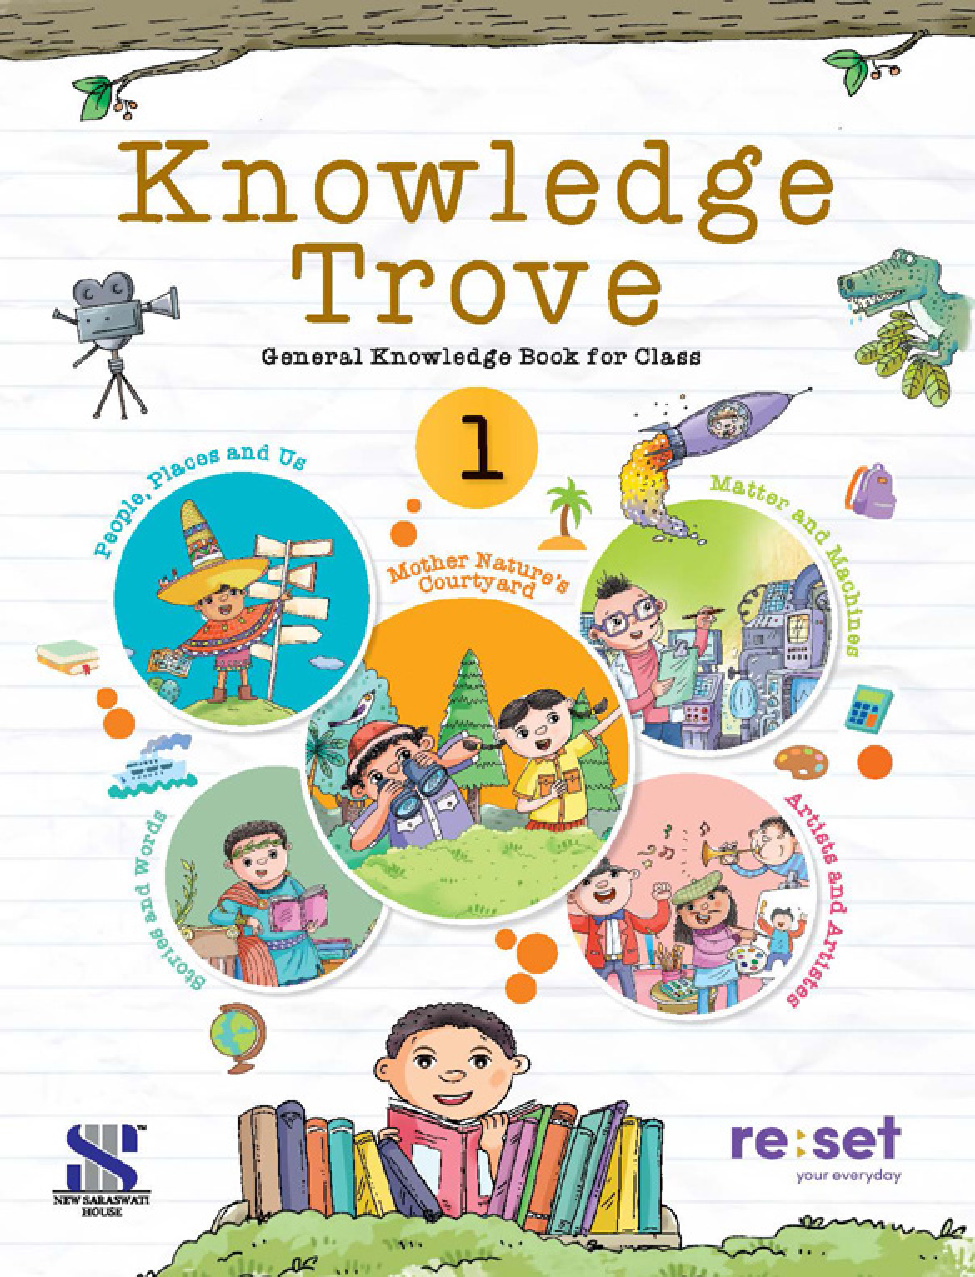 Knowledge Trove General Knowledge Book For Class-1 - Page 1